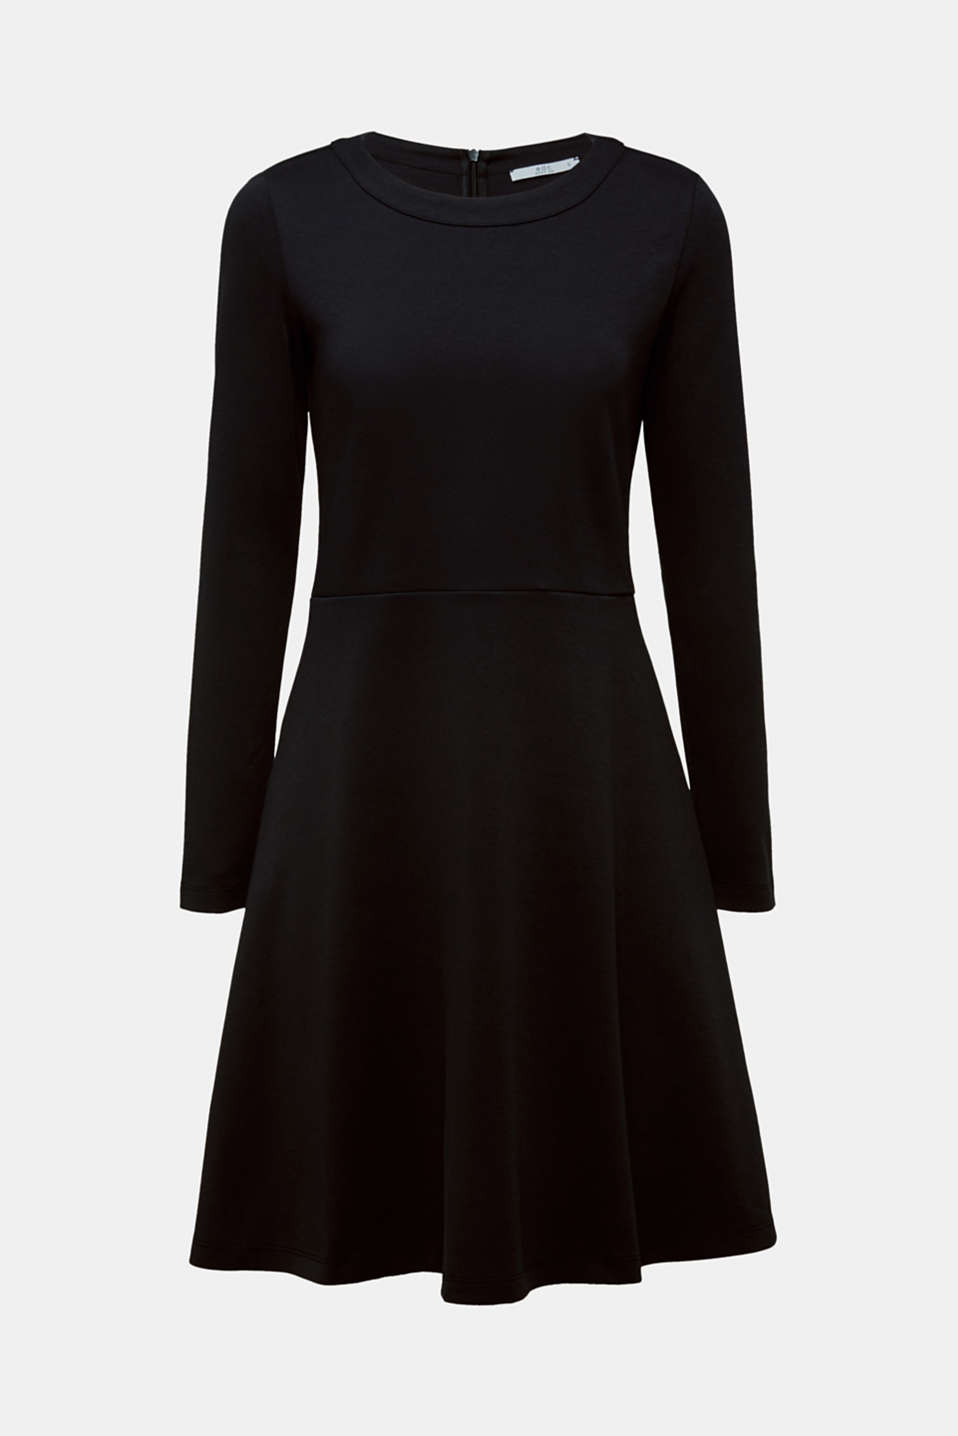 Textured stretch jersey dress, BLACK, detail image number 6